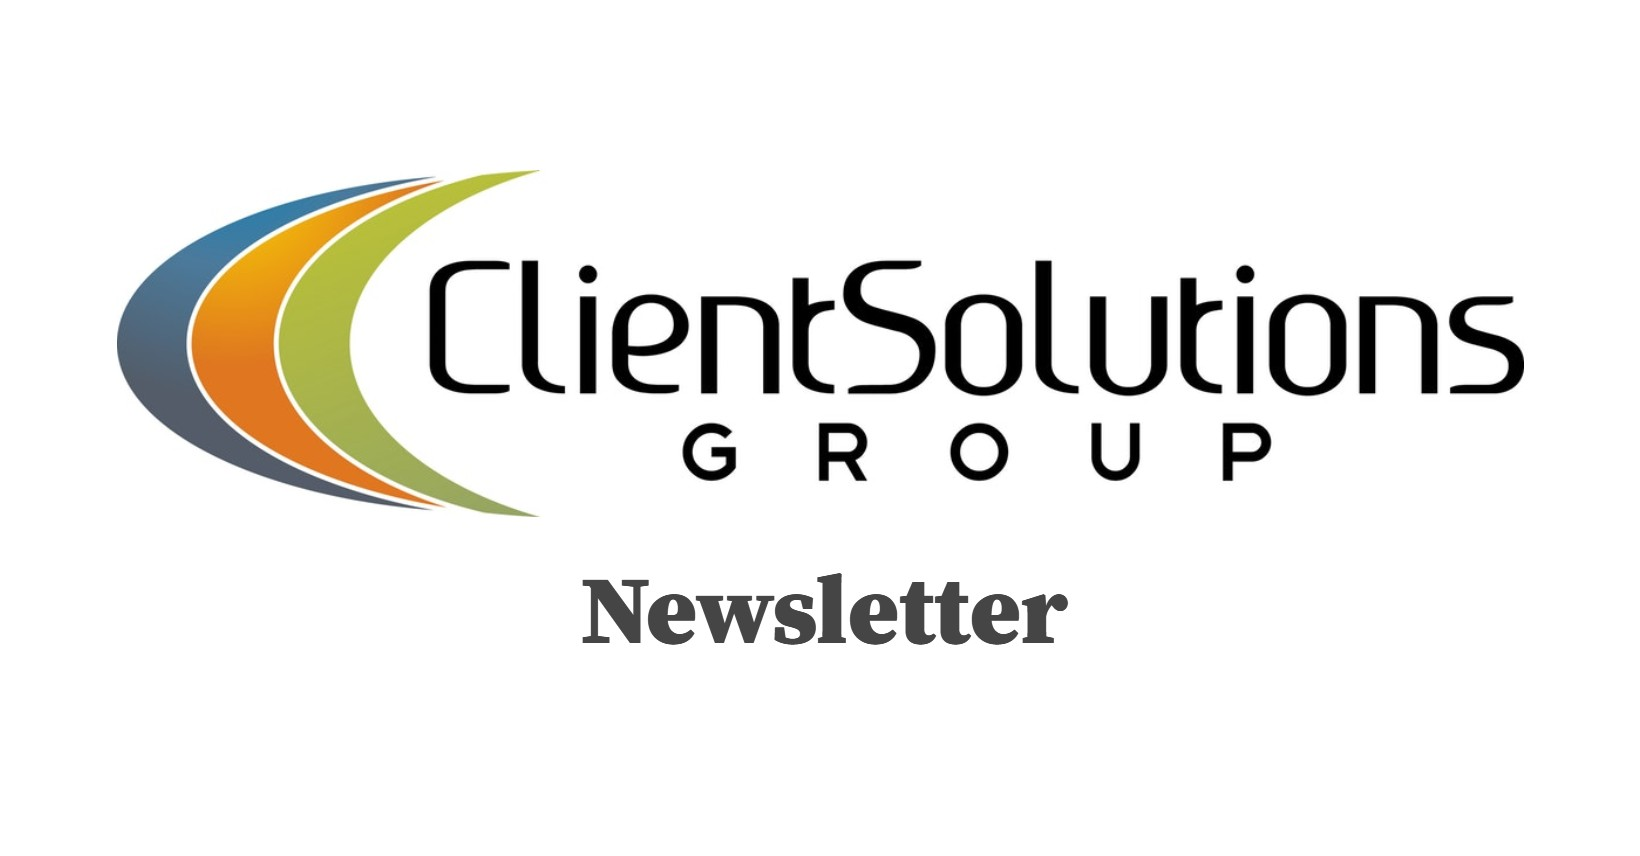 Client Solutions Group newsletter header